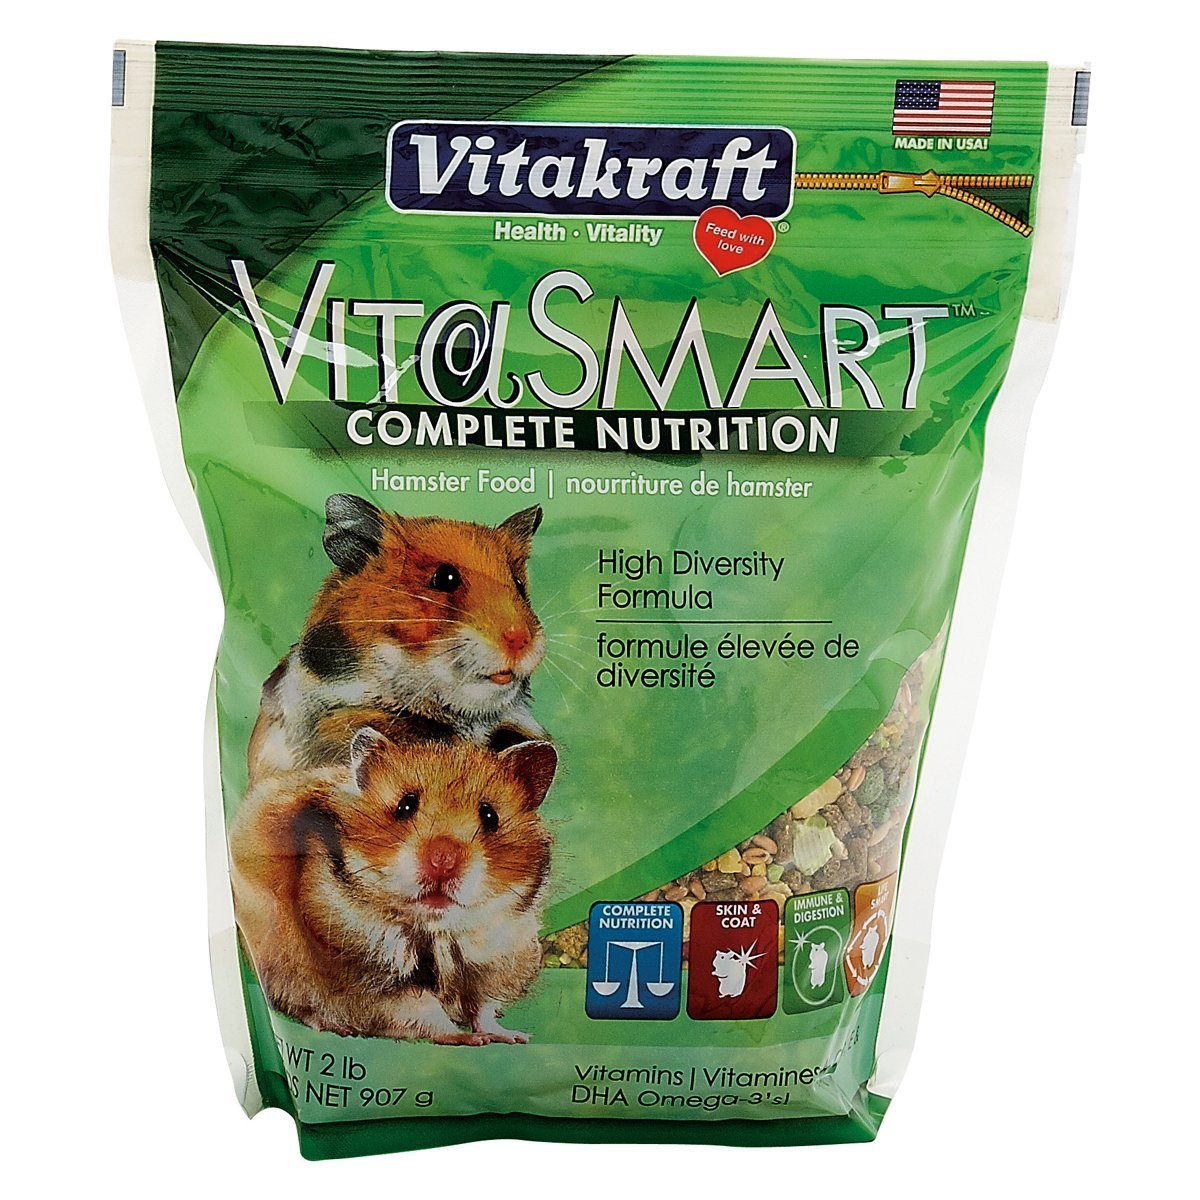 VitaSmart Hamster Food High Diversity Formula, 2 lb., Offers a diverse blend of foods to help meet your... by